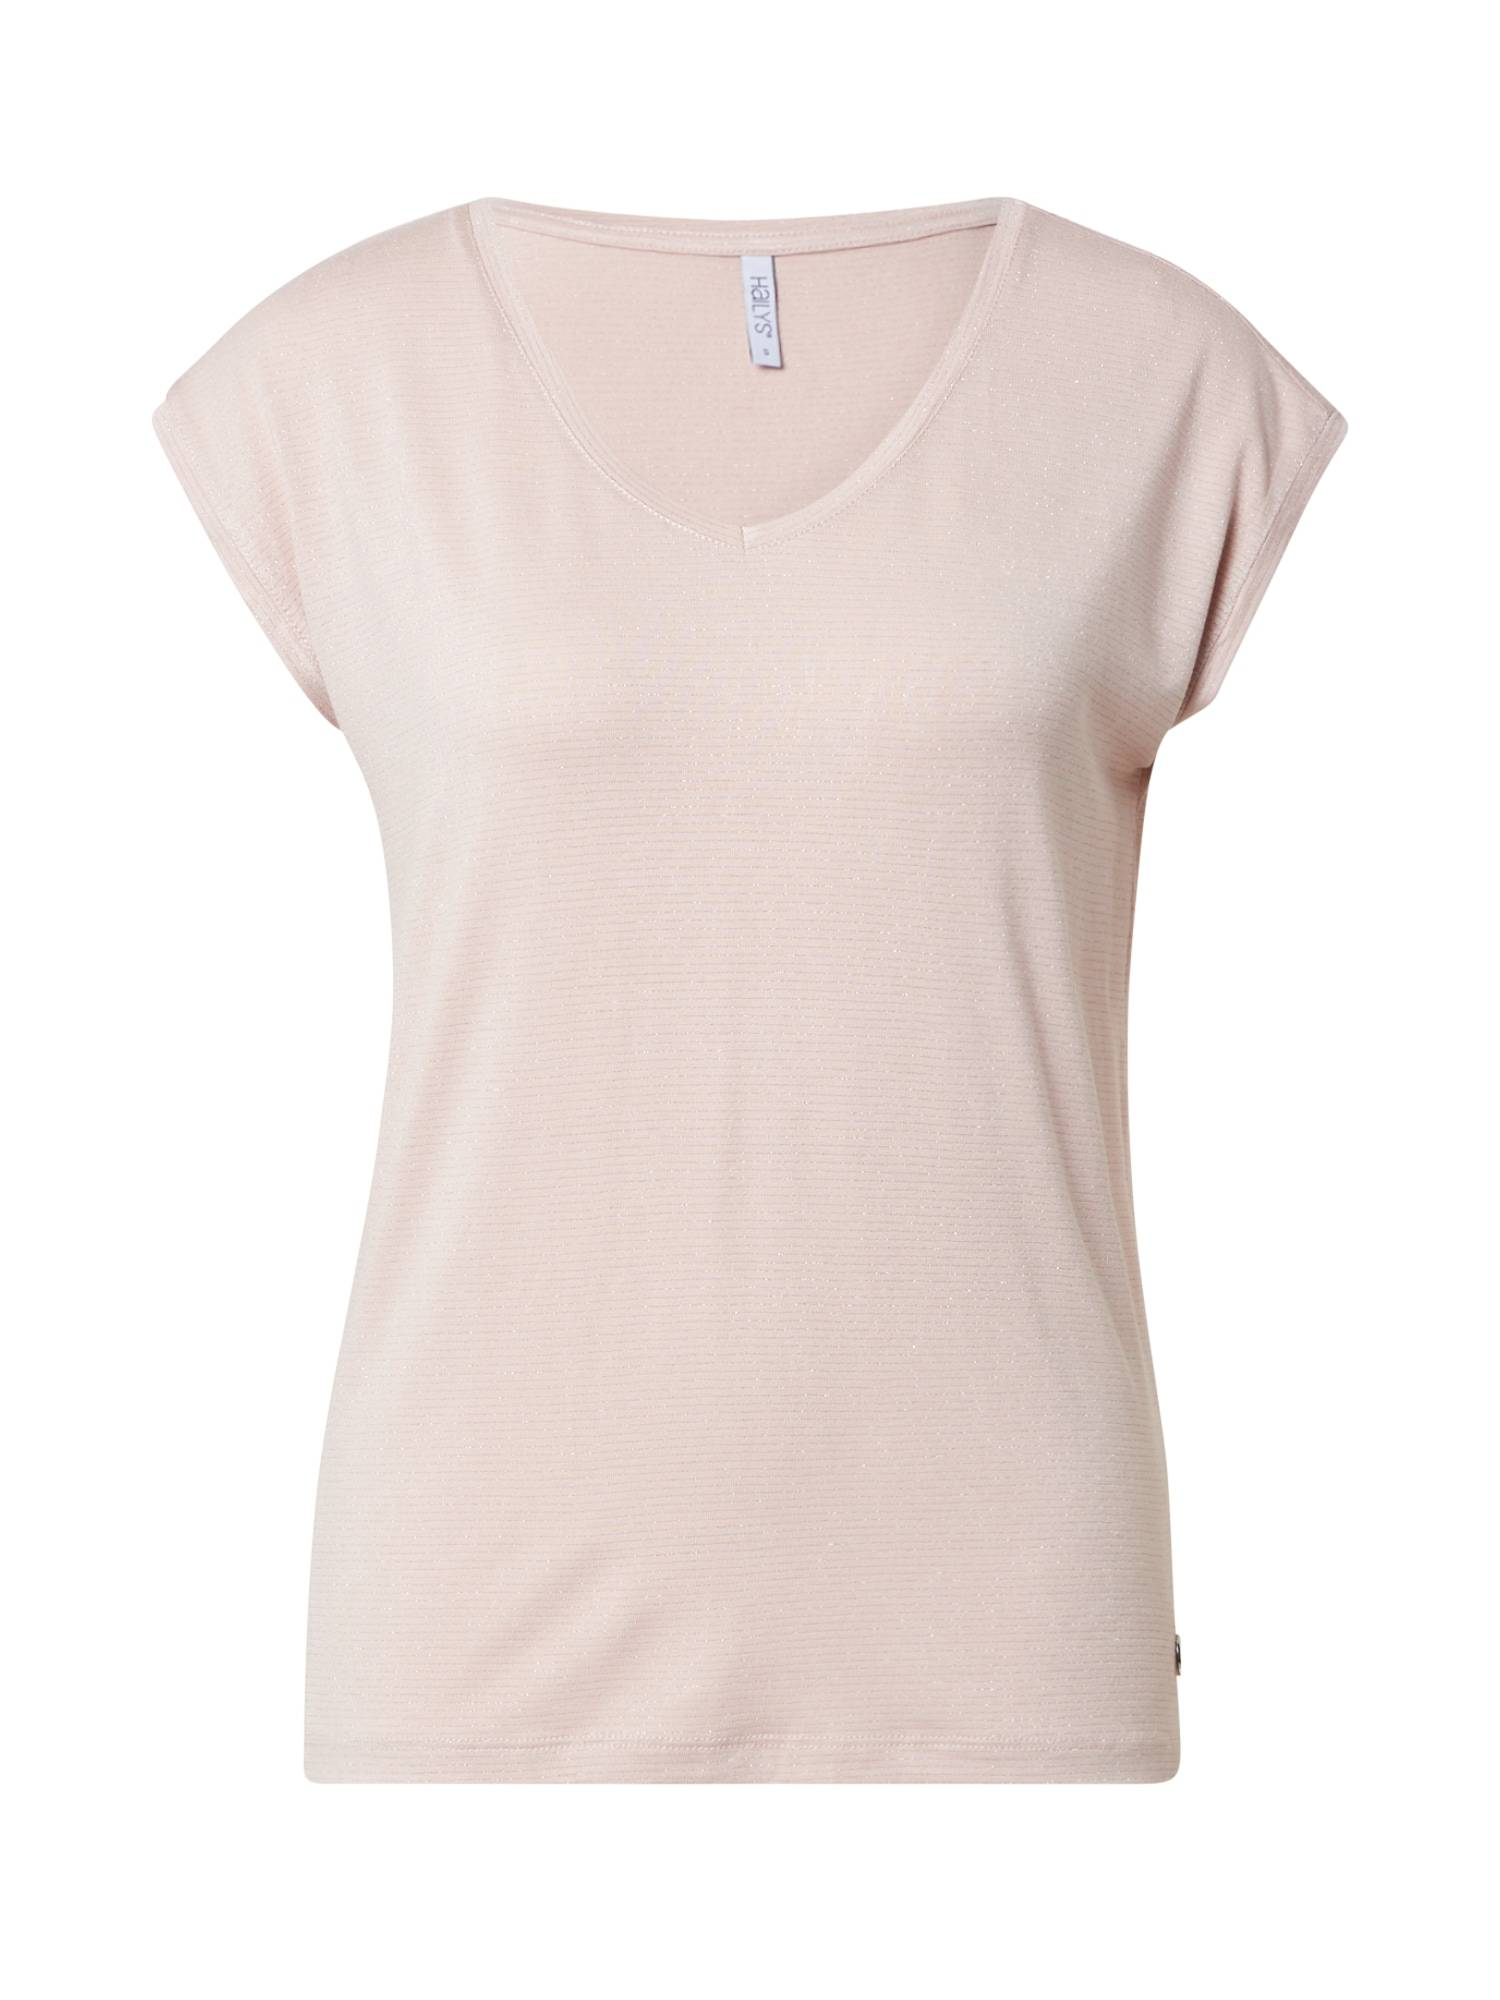 Hailys T-shirt 'TP Luxe'  - Rose - Taille: XS - female